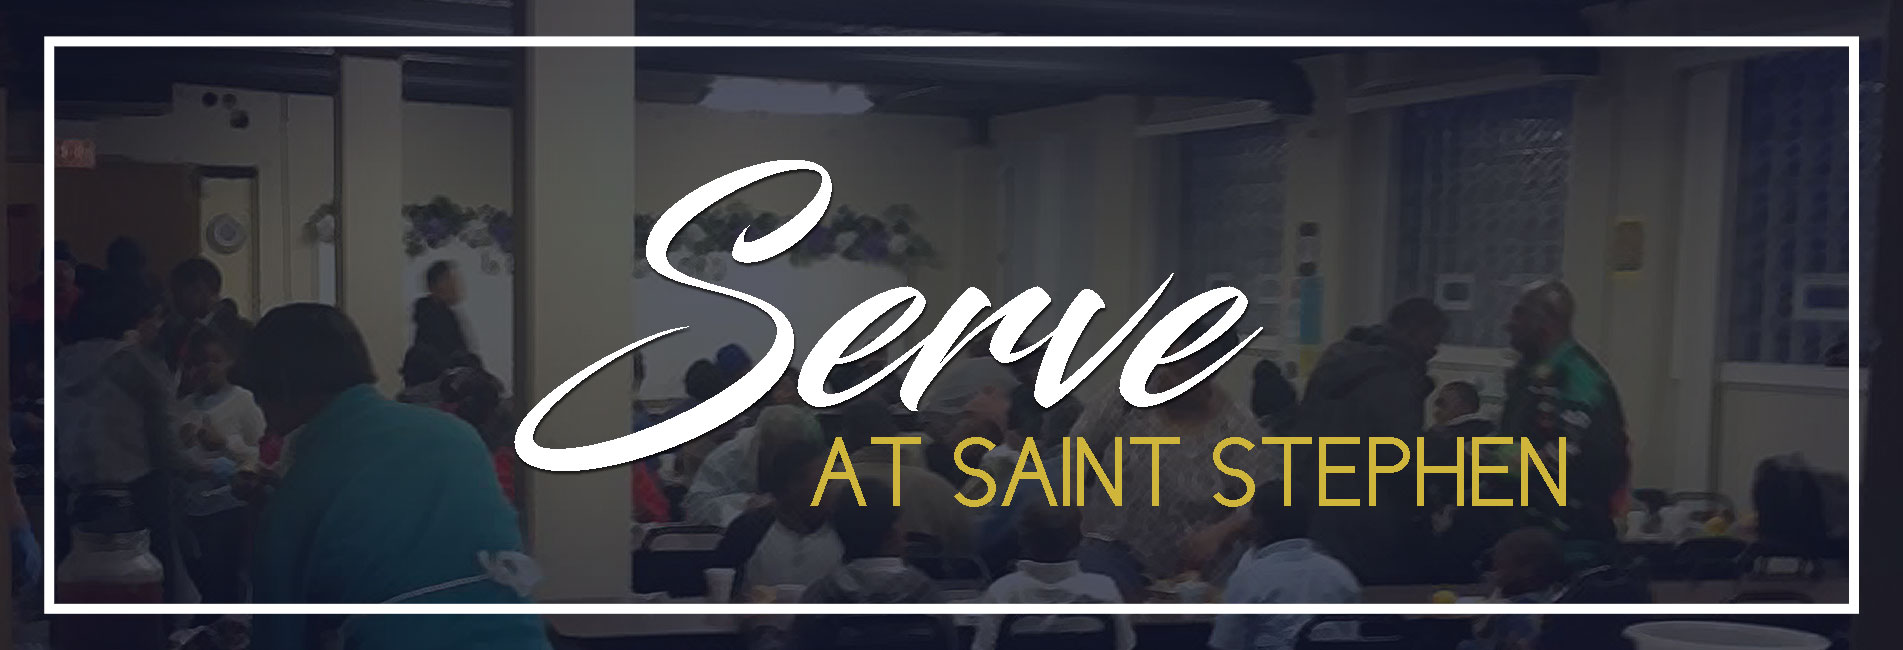 Serve at Saint Stephen